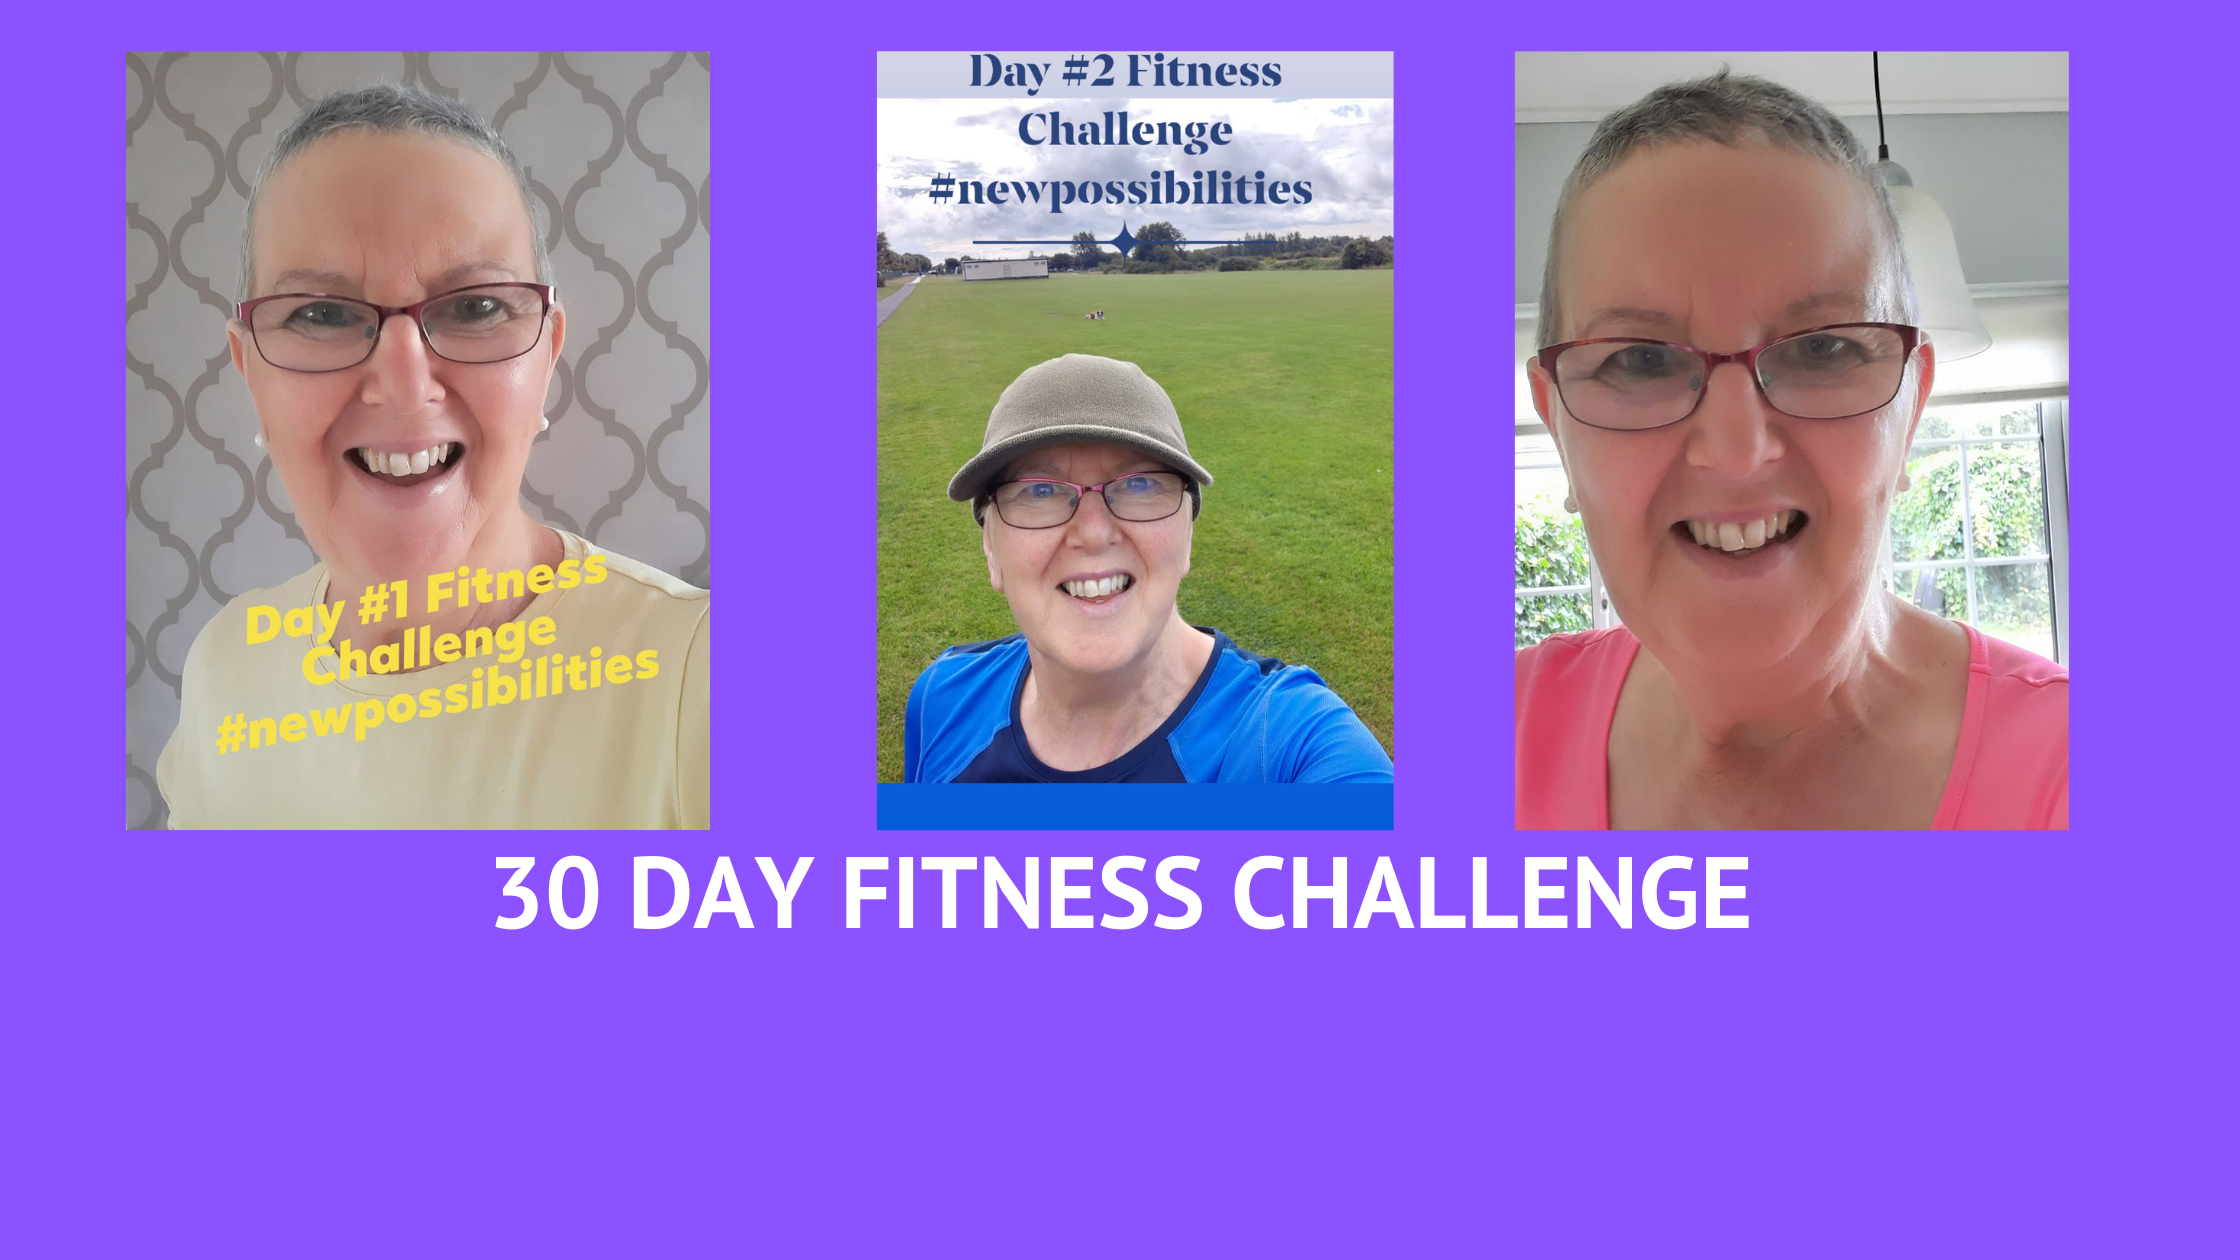 How a 30 Day Challenge can help you get motivated?